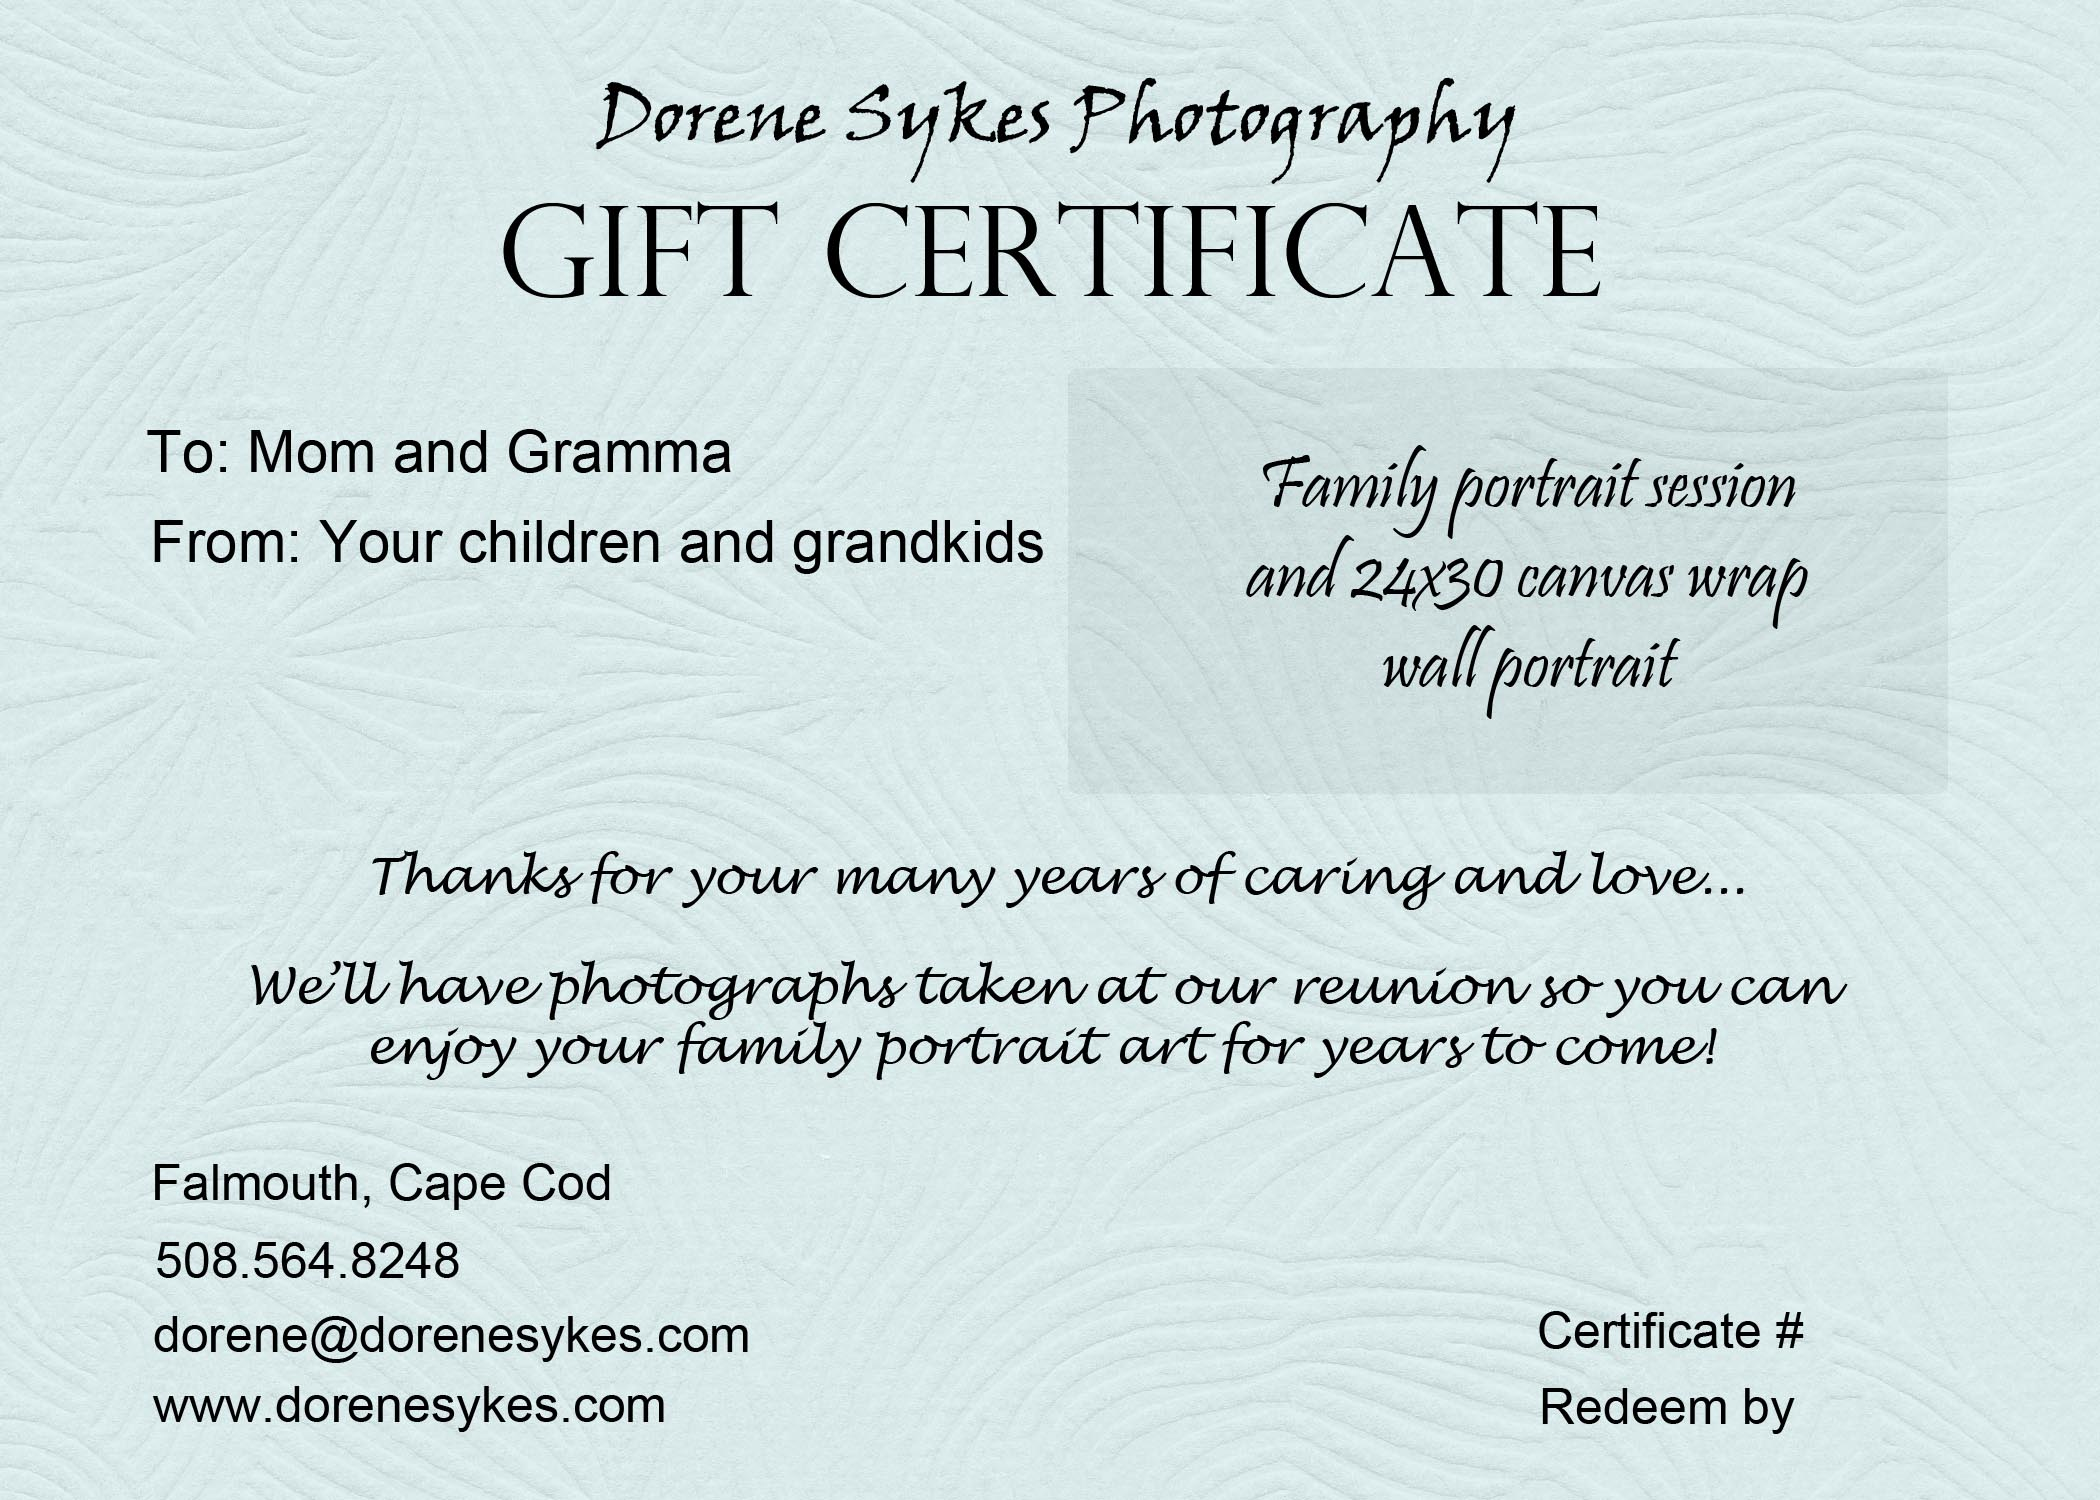 gift certificate sample dorene sykes photography blog gift certificate sample gift certificate sample